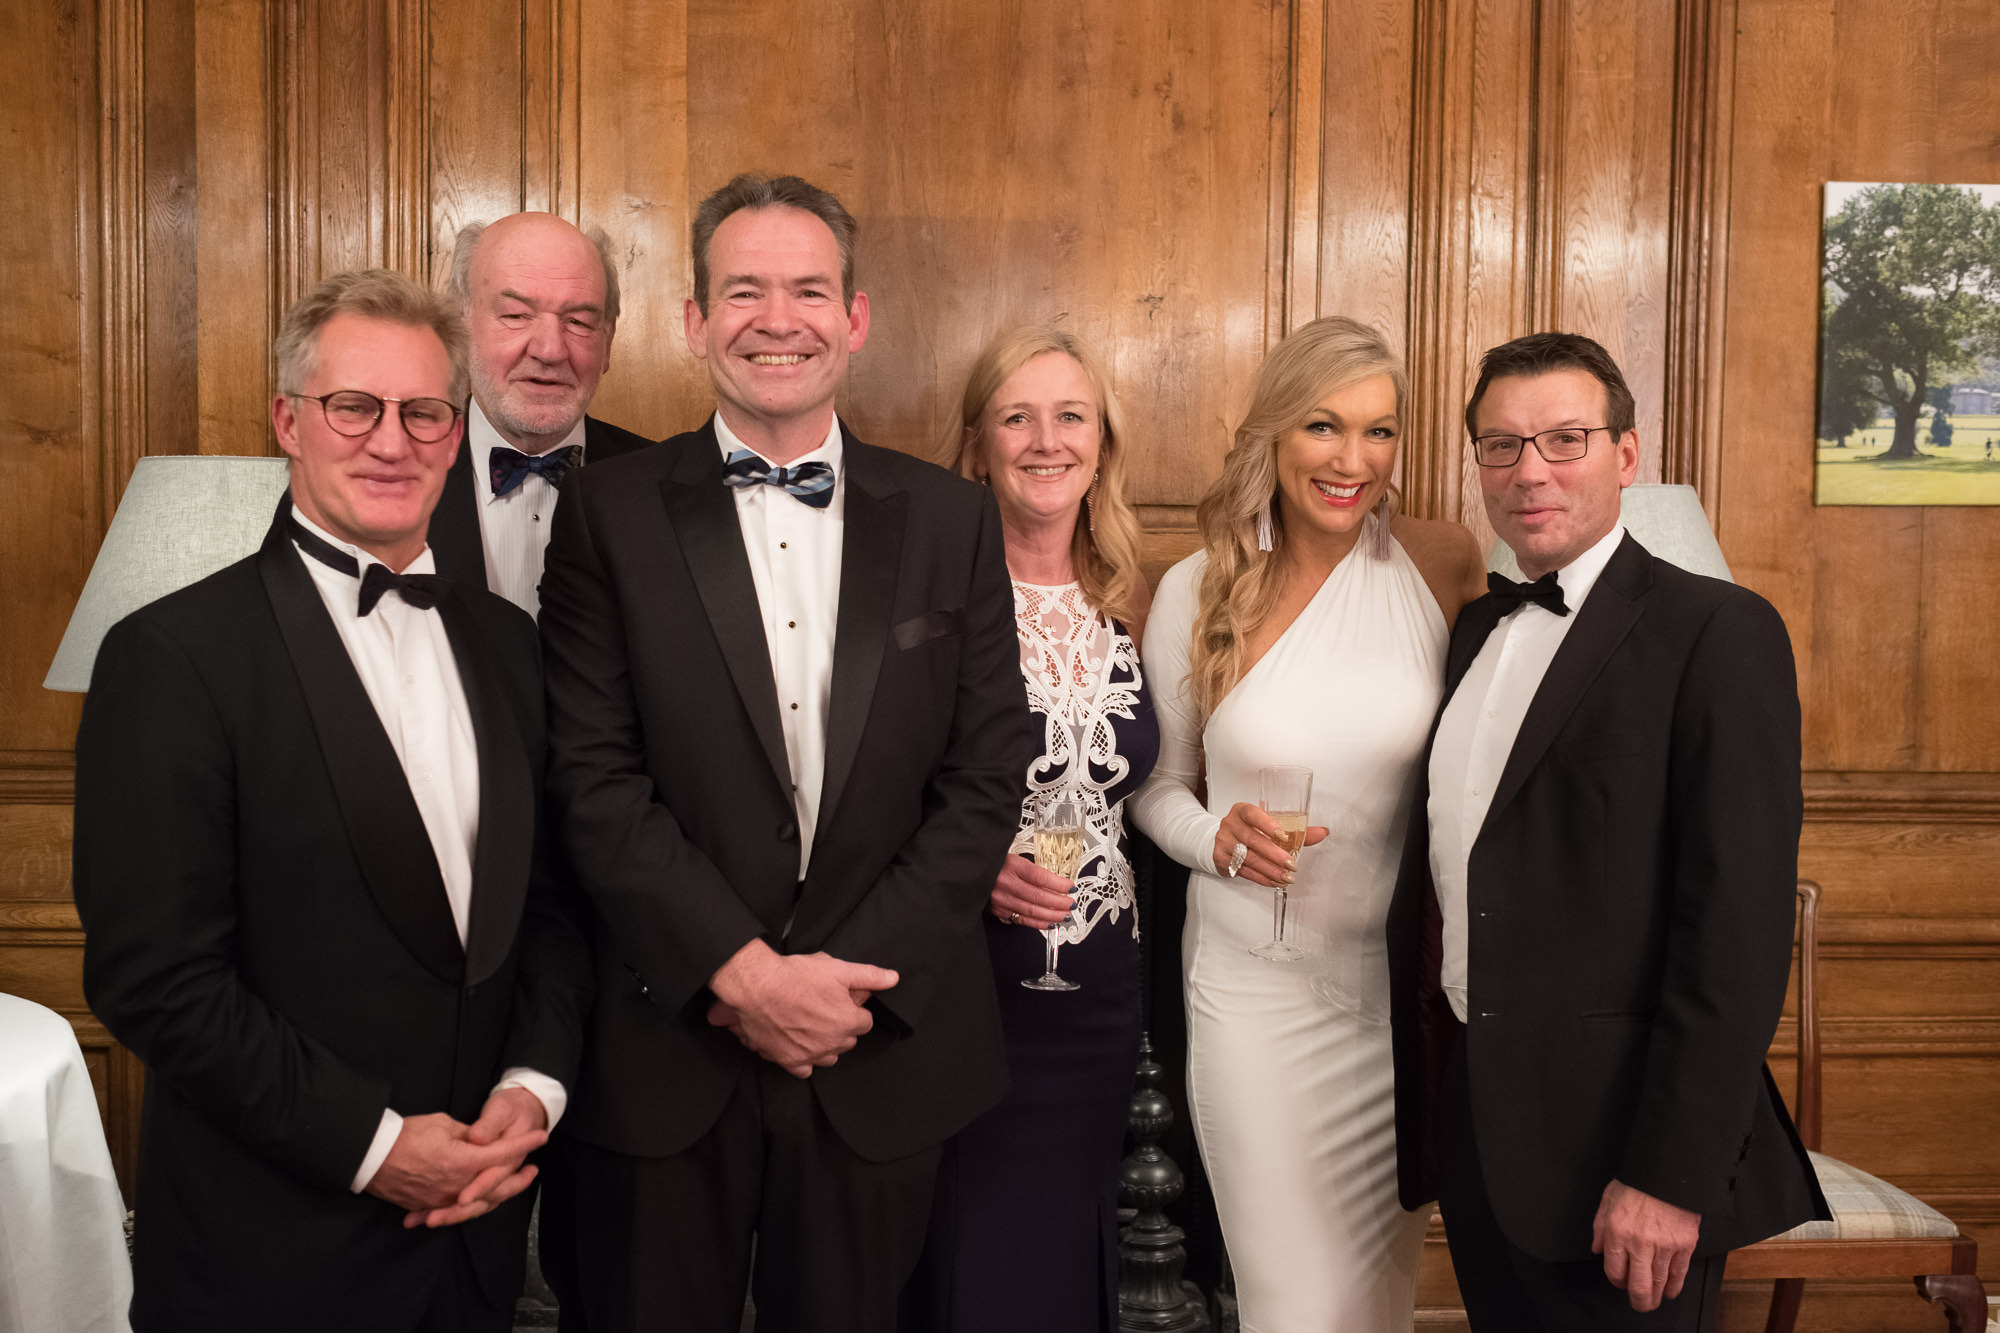 Seaford College Sports dinner with celebrity guests